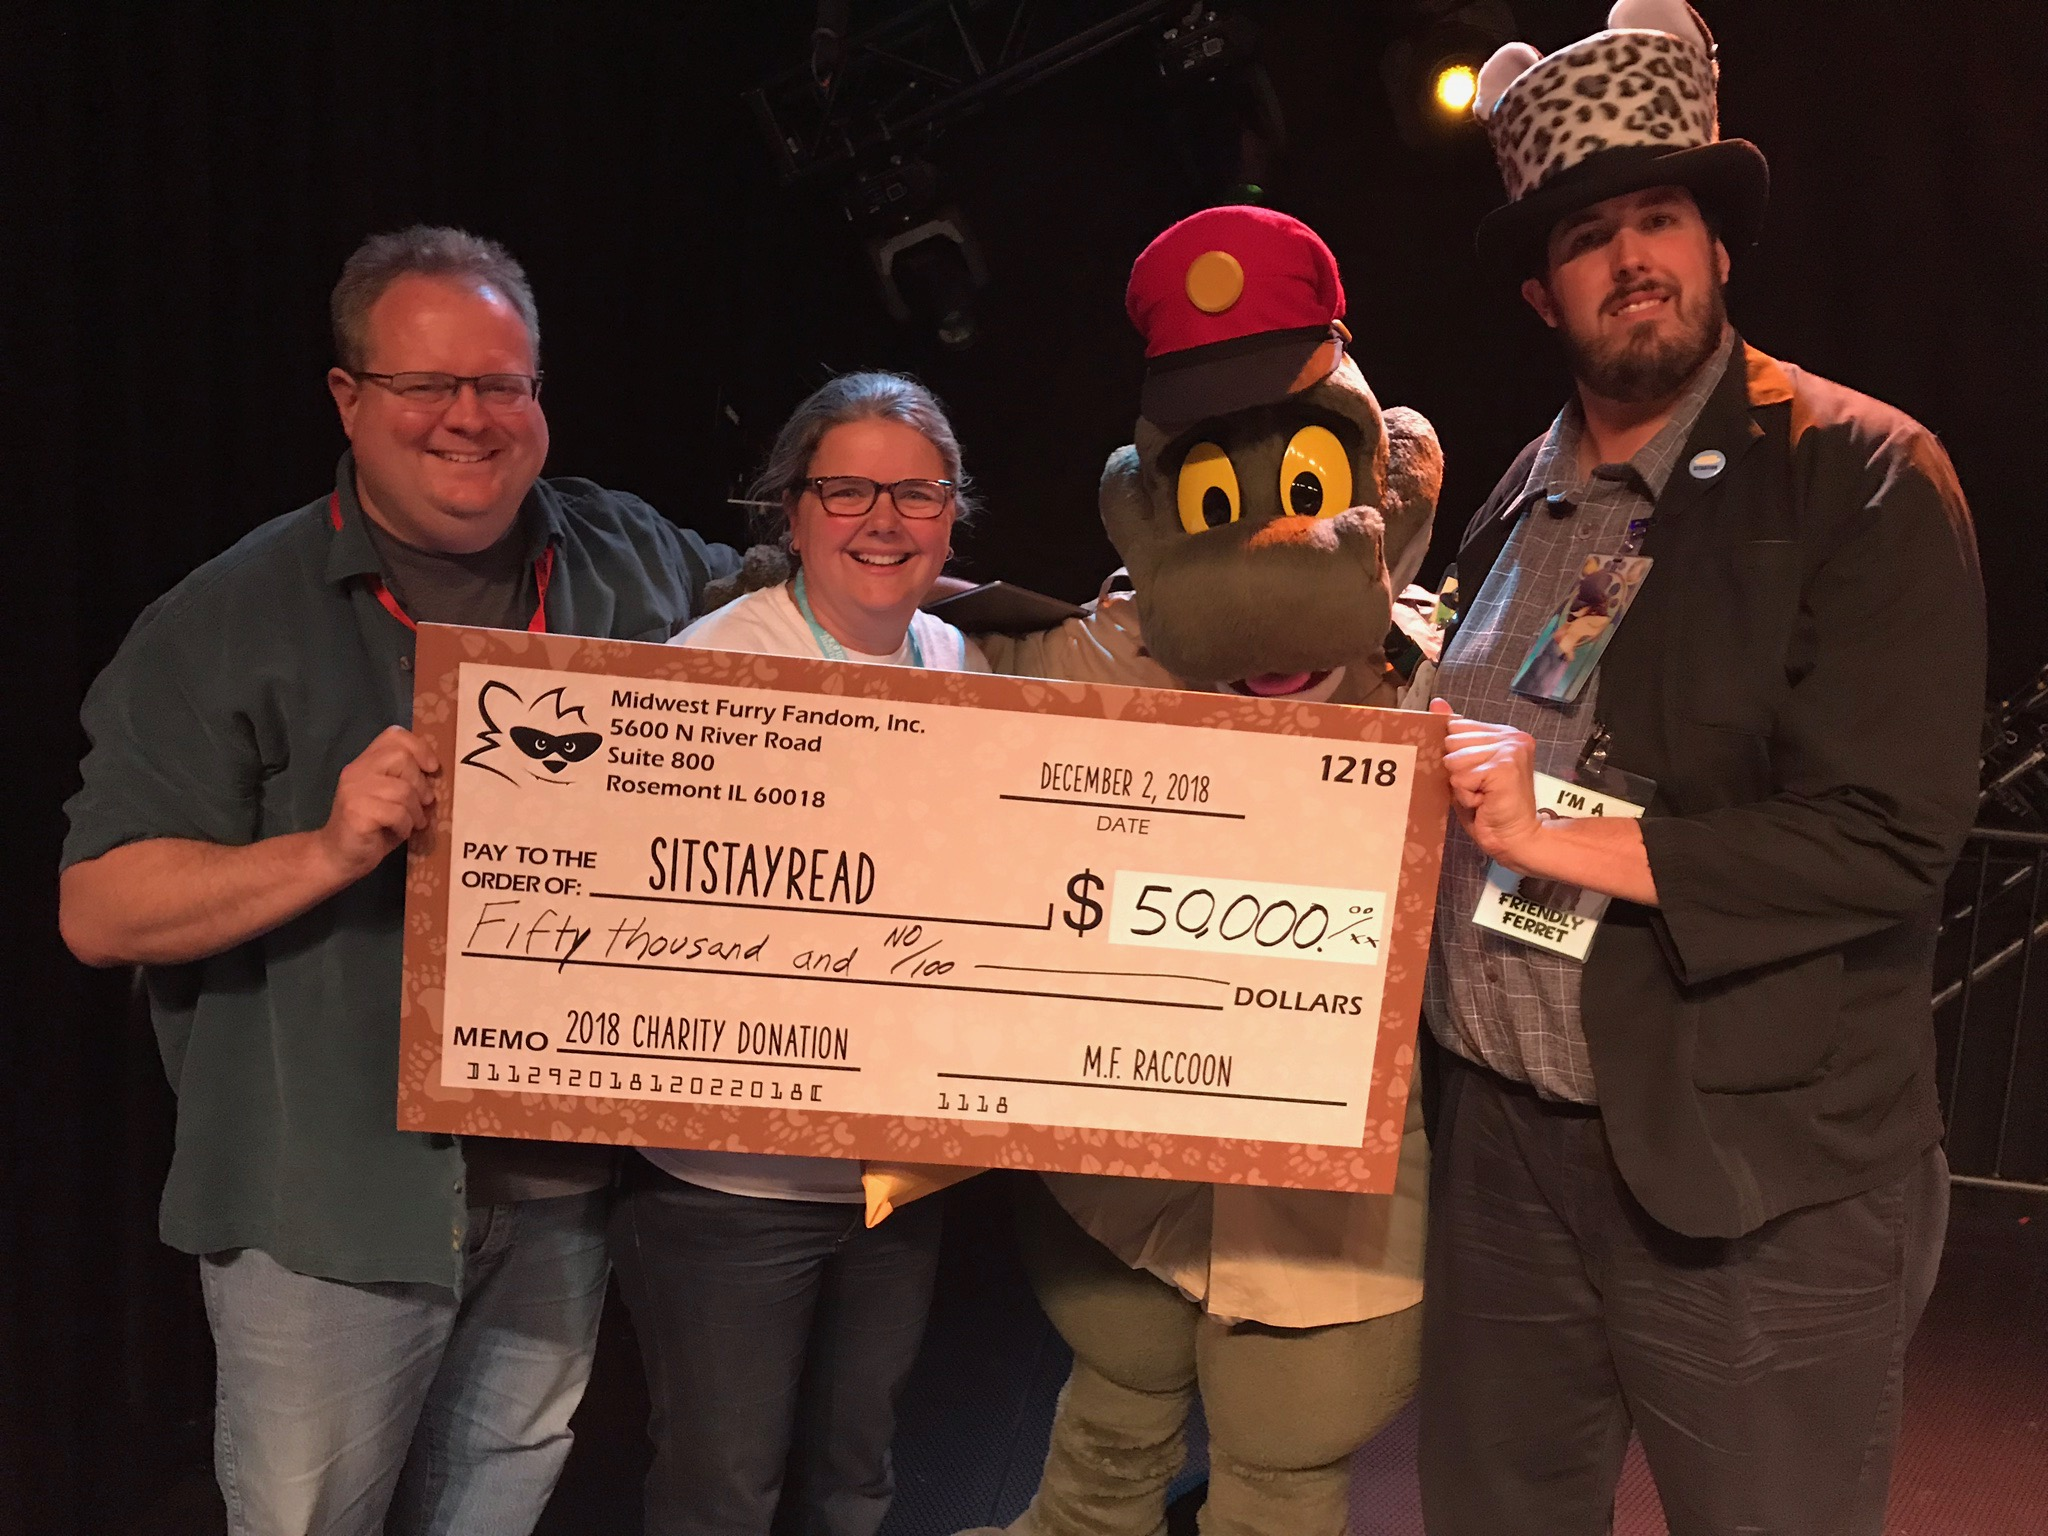 Executive Director Mara O'Brien accepts a check for $50,000 from the Midwest FurFest.